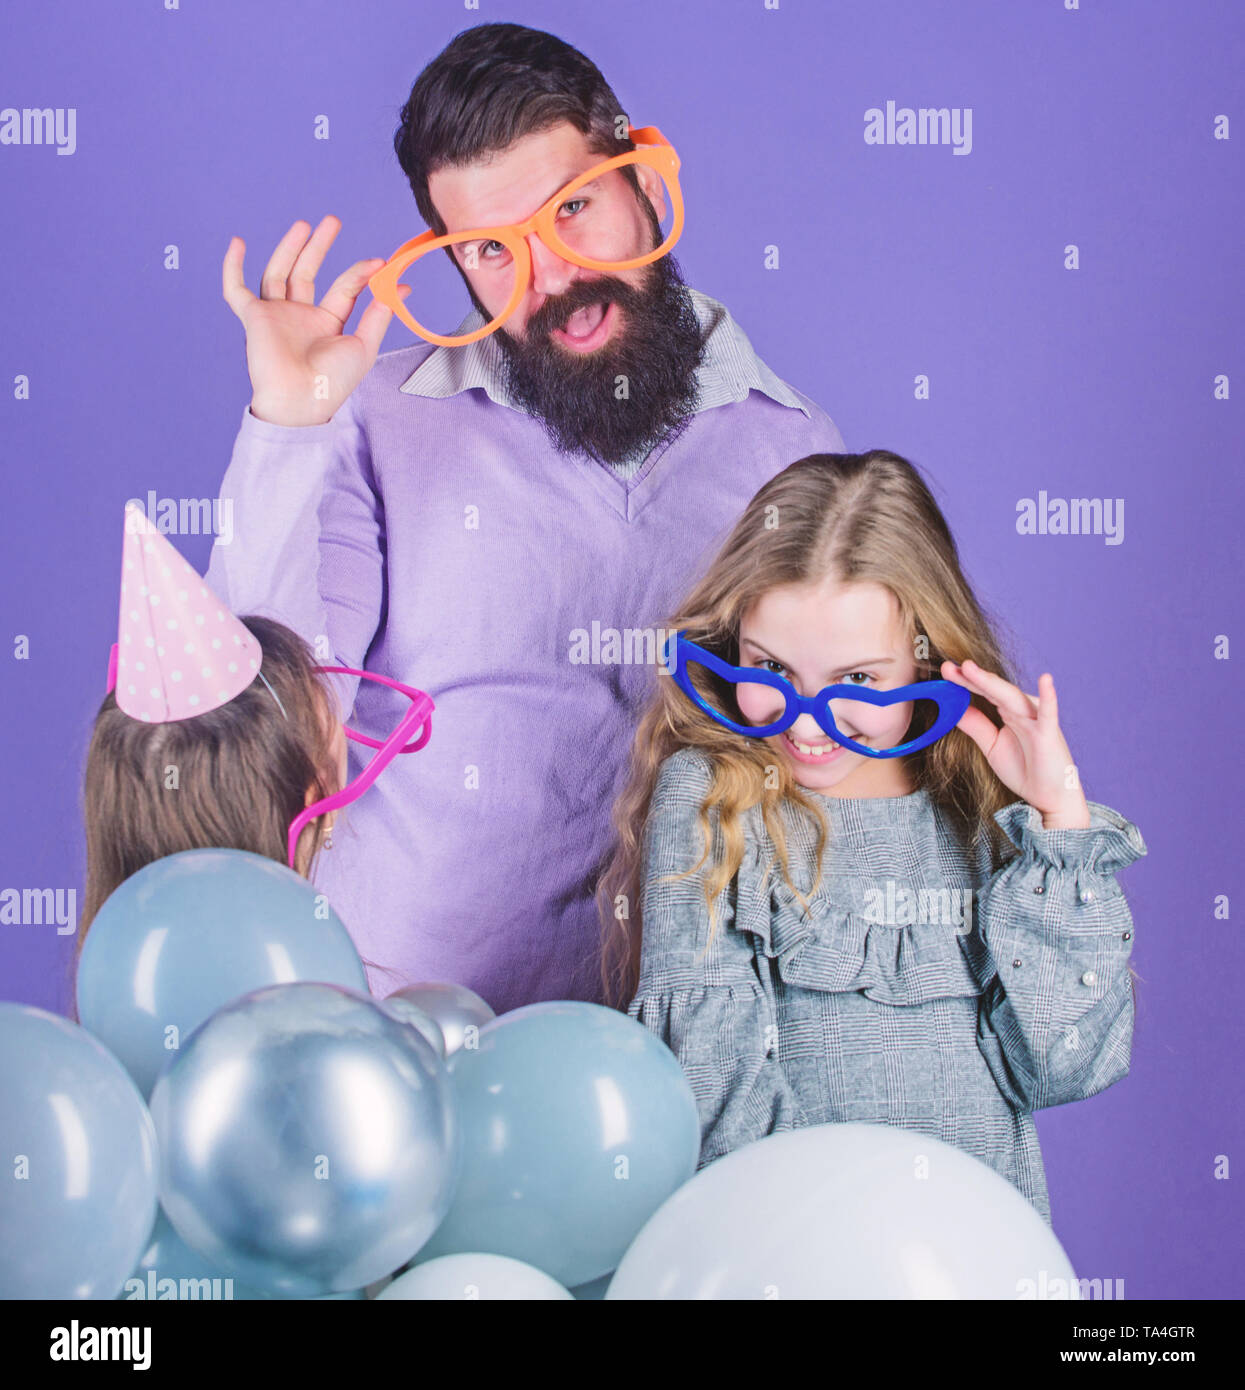 Friendly family wear funny party accessories. Fathers day. Daughters need father actively interested in life. Single father. Birthday party. Father with two daughters having fun. Fatherhood concept. - Stock Image